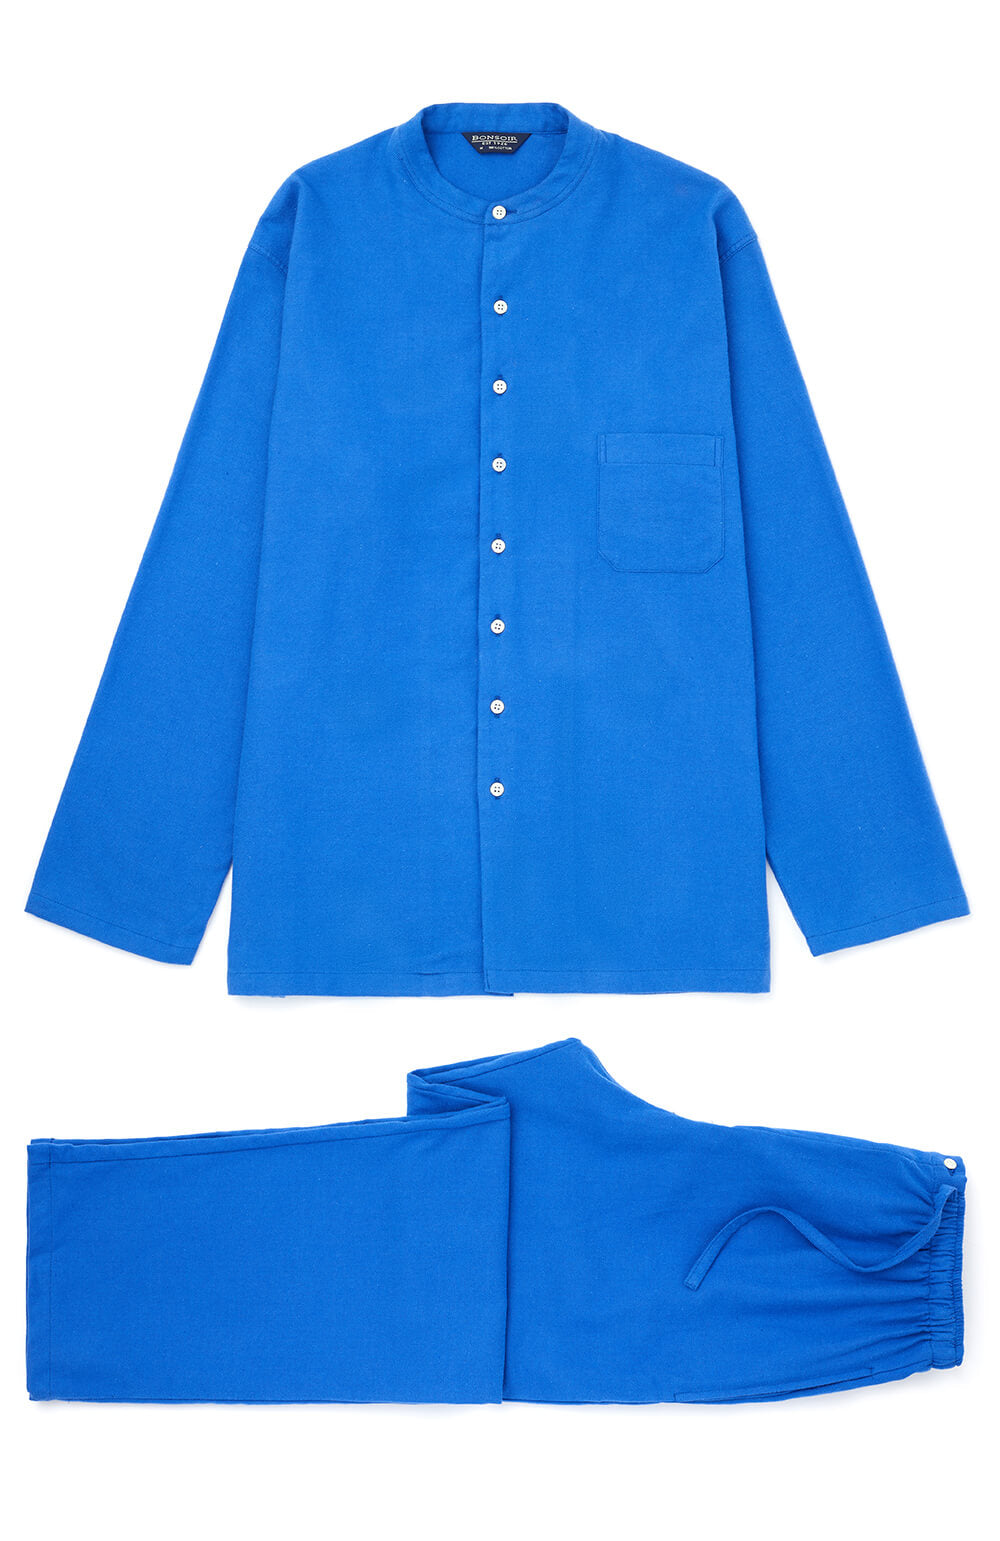 Brushed Cotton Grandad Pyjamas (jmpg) - Bright Blue | Bonsoir of London